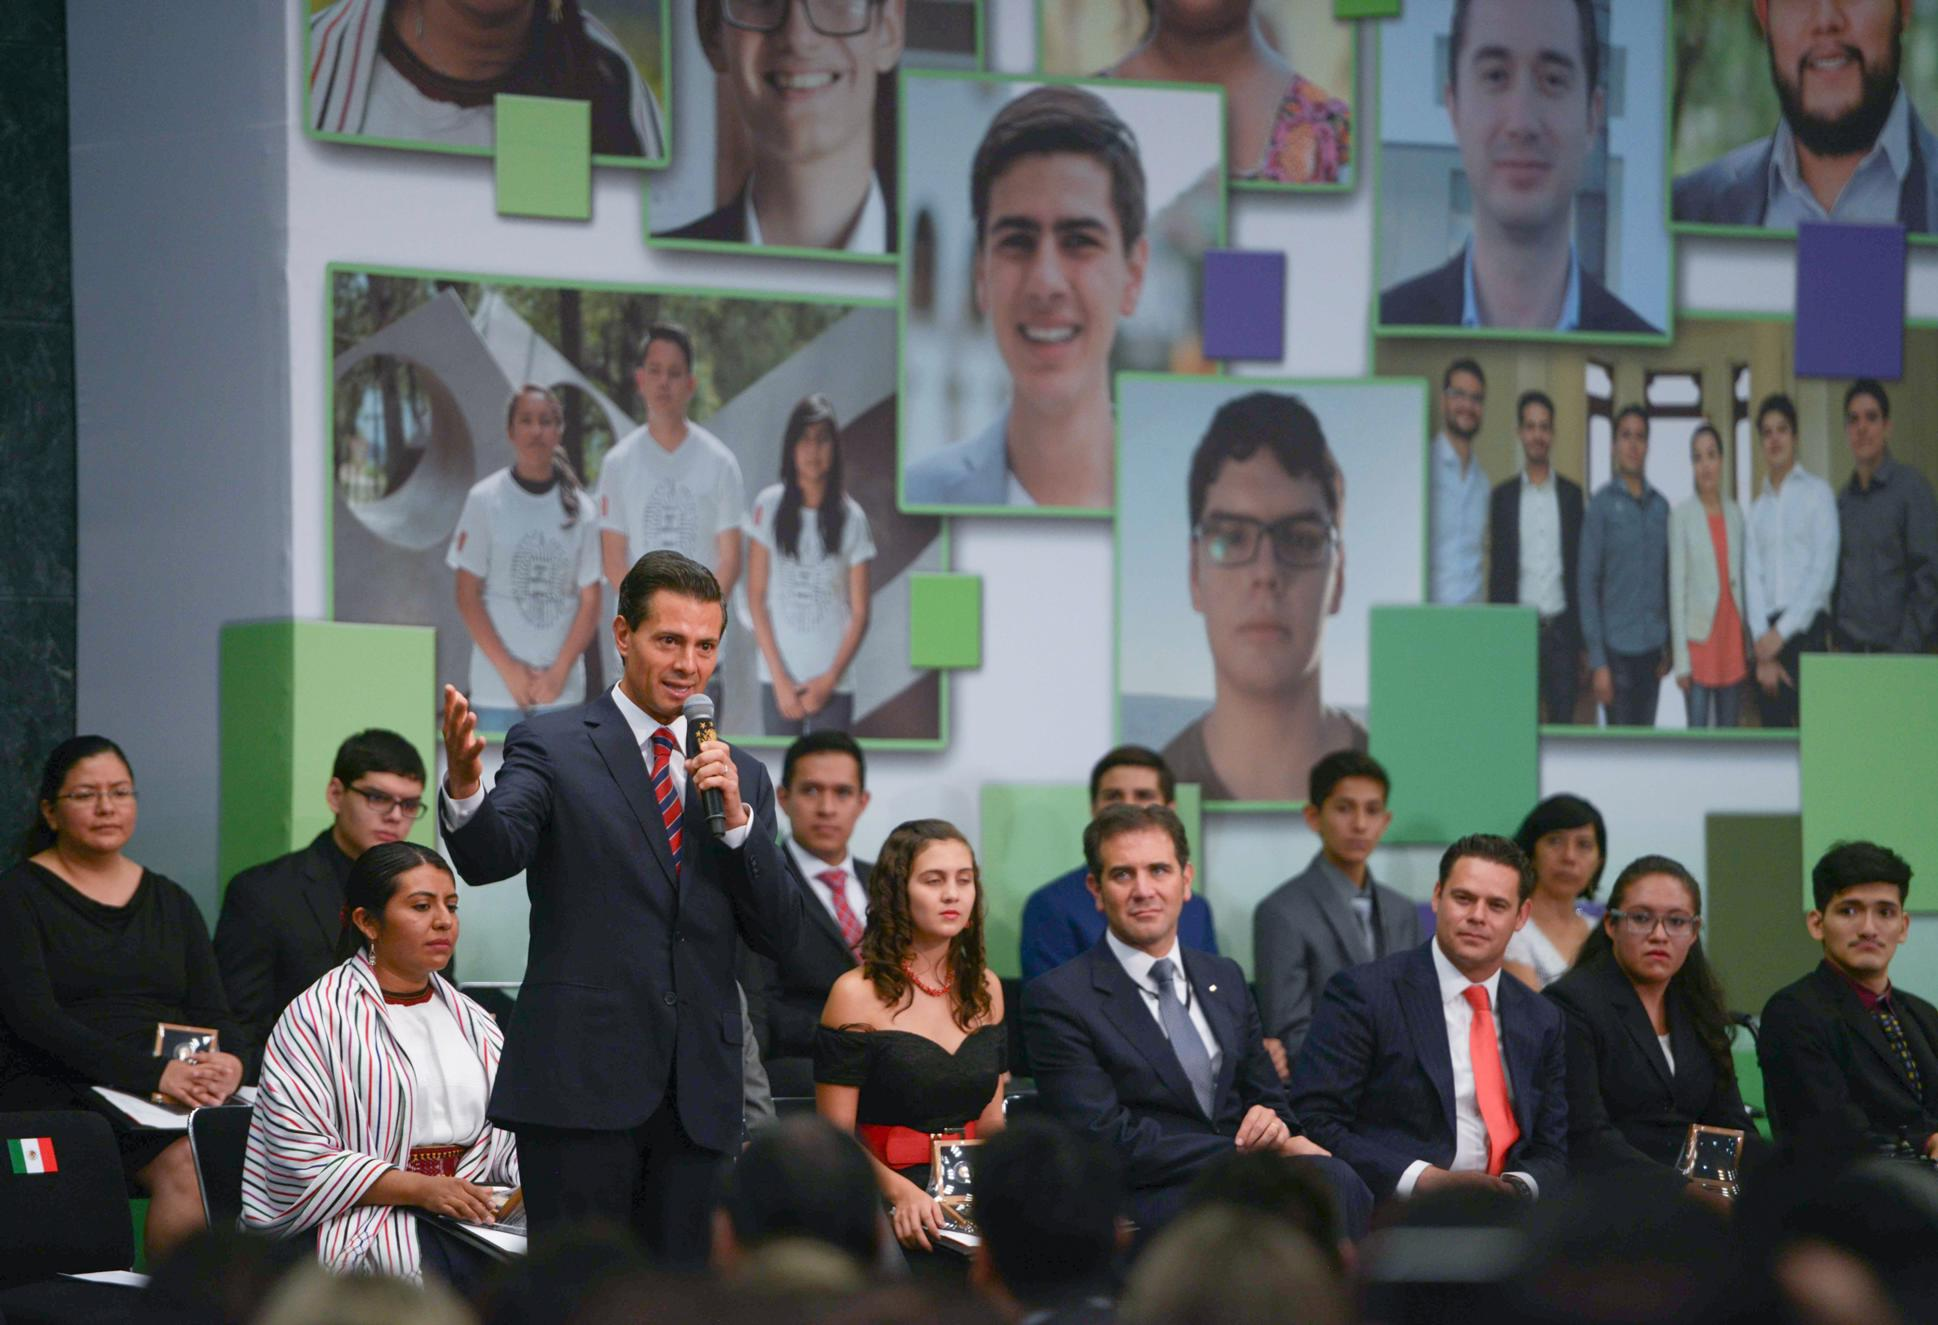 The Mexican president presented the National Youth Award 2016.